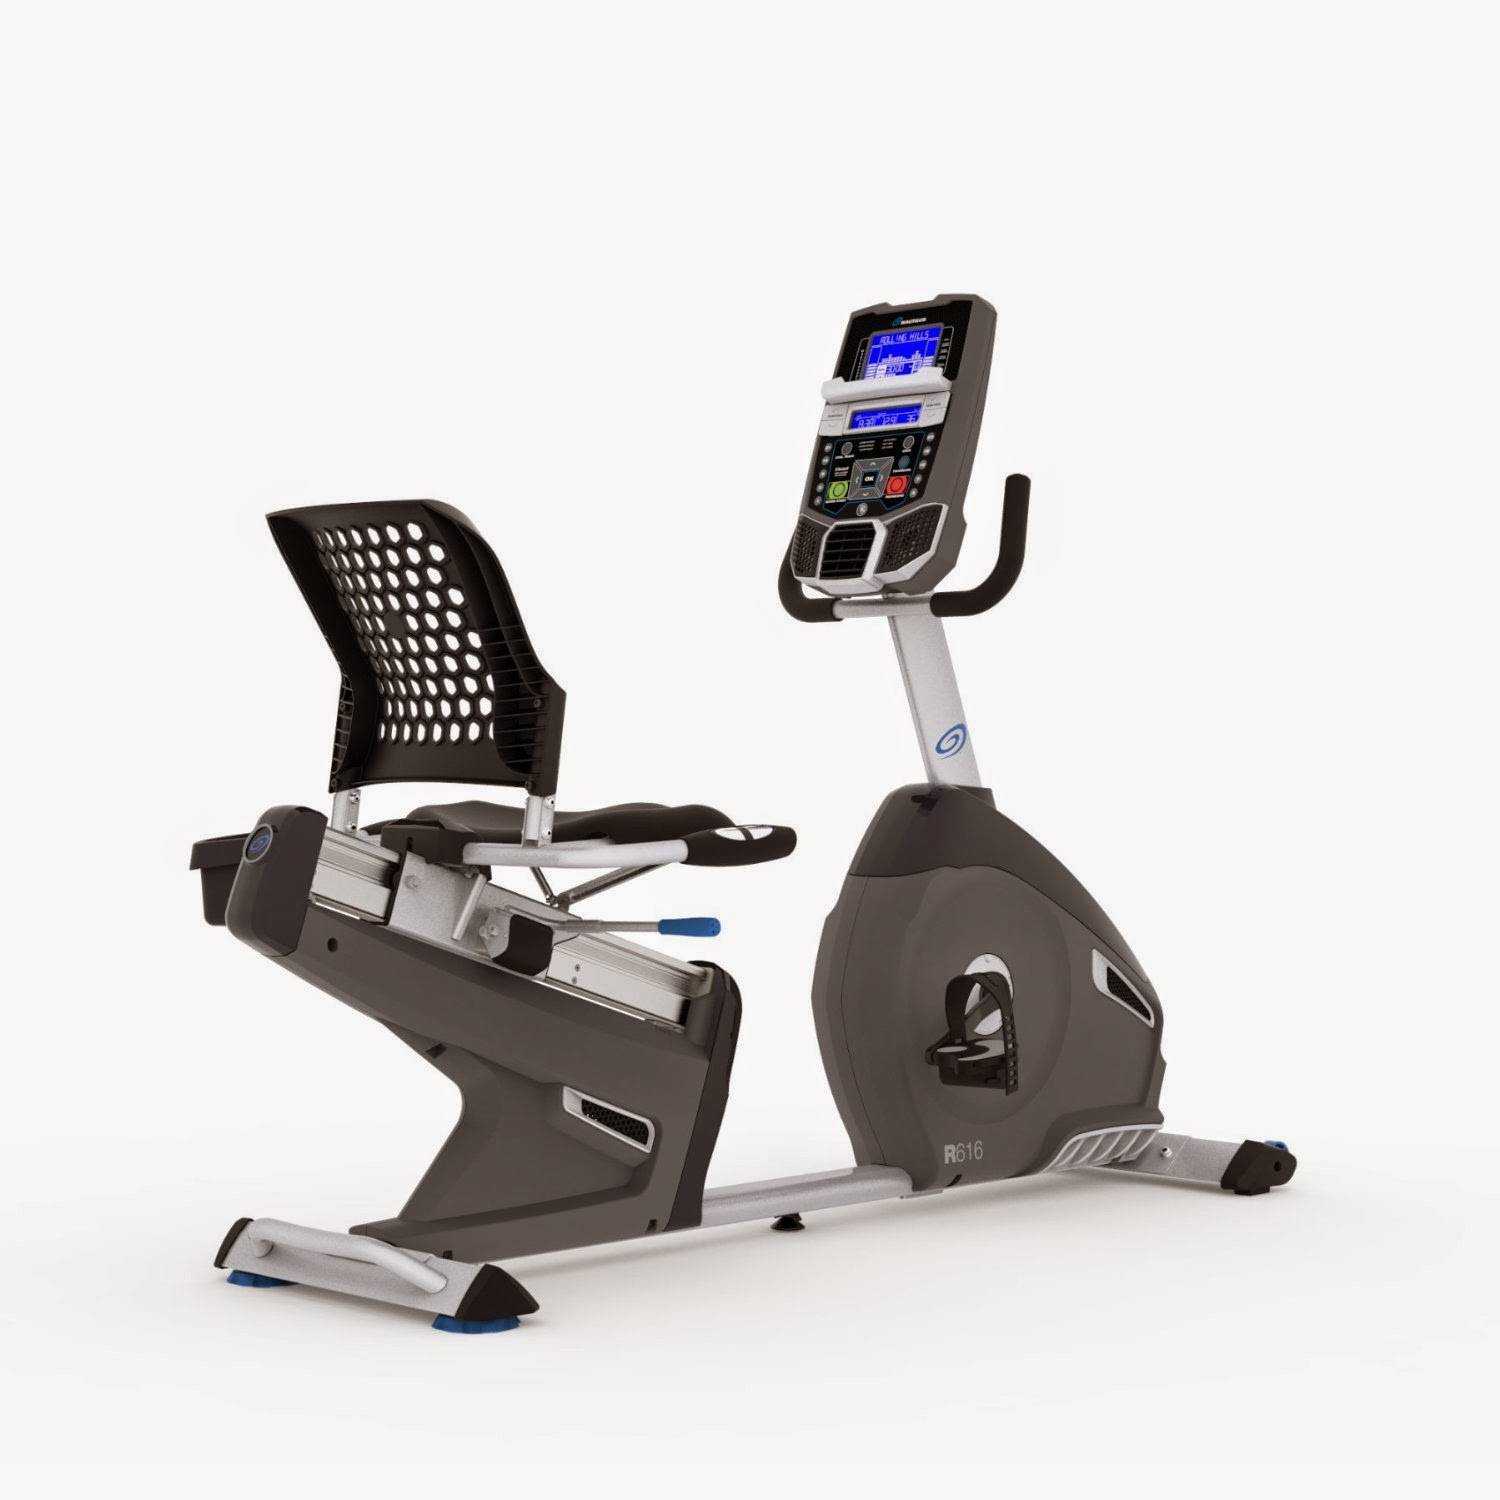 Nautilus R616 Recumbent Exercise Bike, picture, image, review features & specifications, compare with Nautilus R614